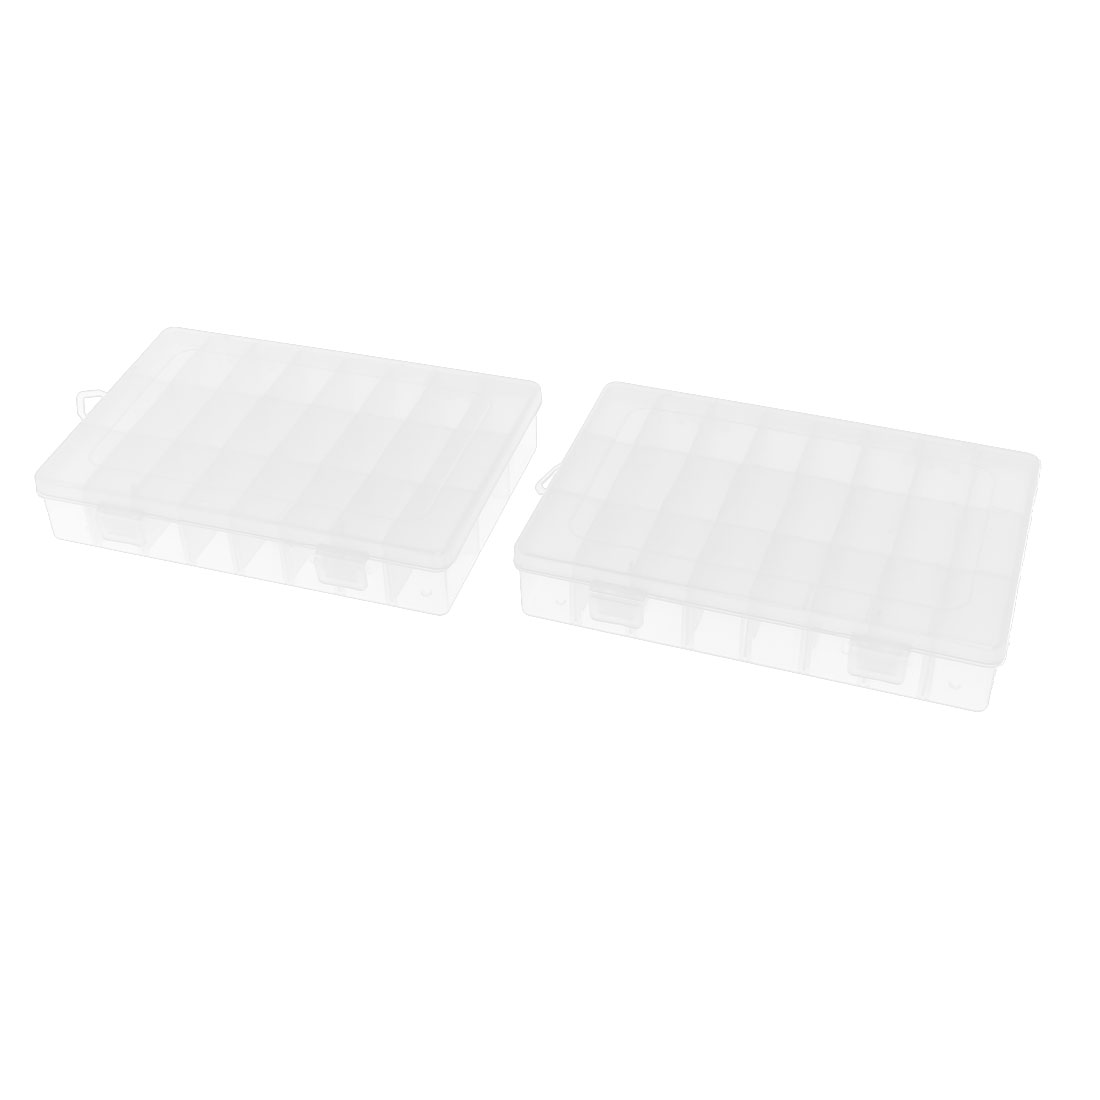 Plastic 24 Separable Compartments Electronic Components Storage Box 2pcs